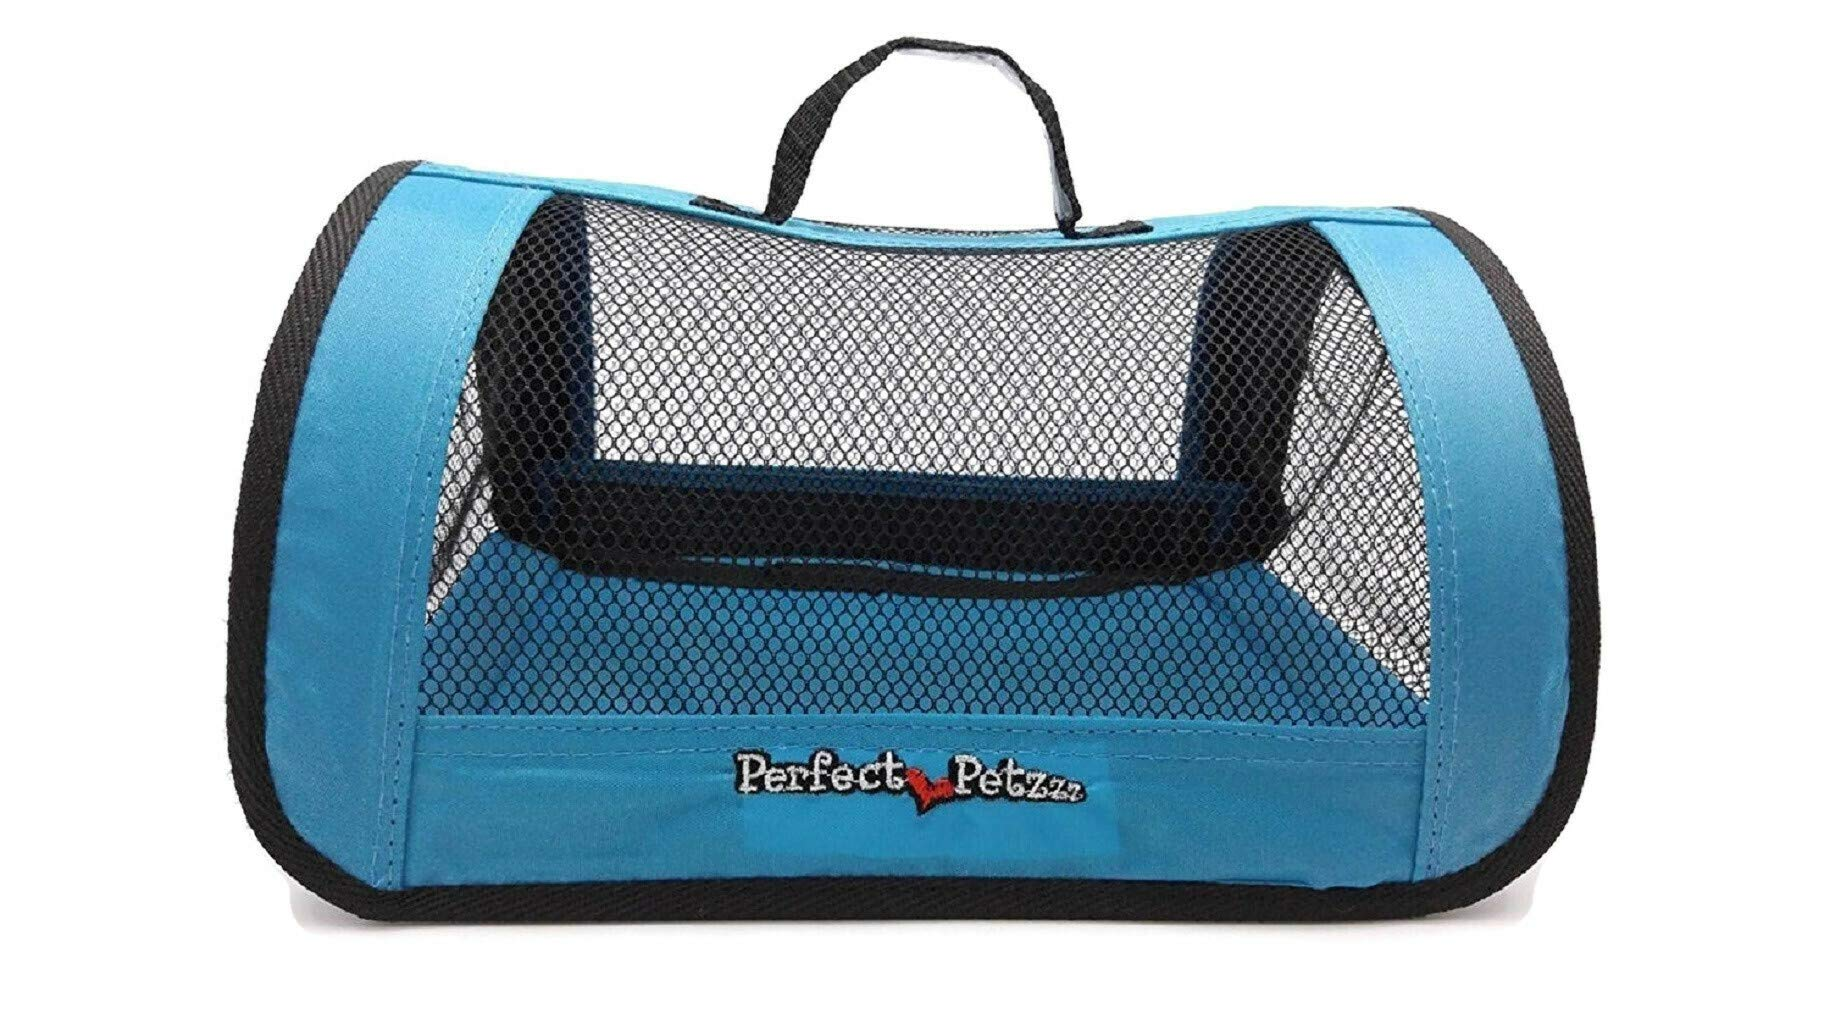 Perfect Petzzz Sturdy Blue Nylon and Mesh Zippered Tote For Carrying Your Plush Toy Pet by Perfect Petzzz